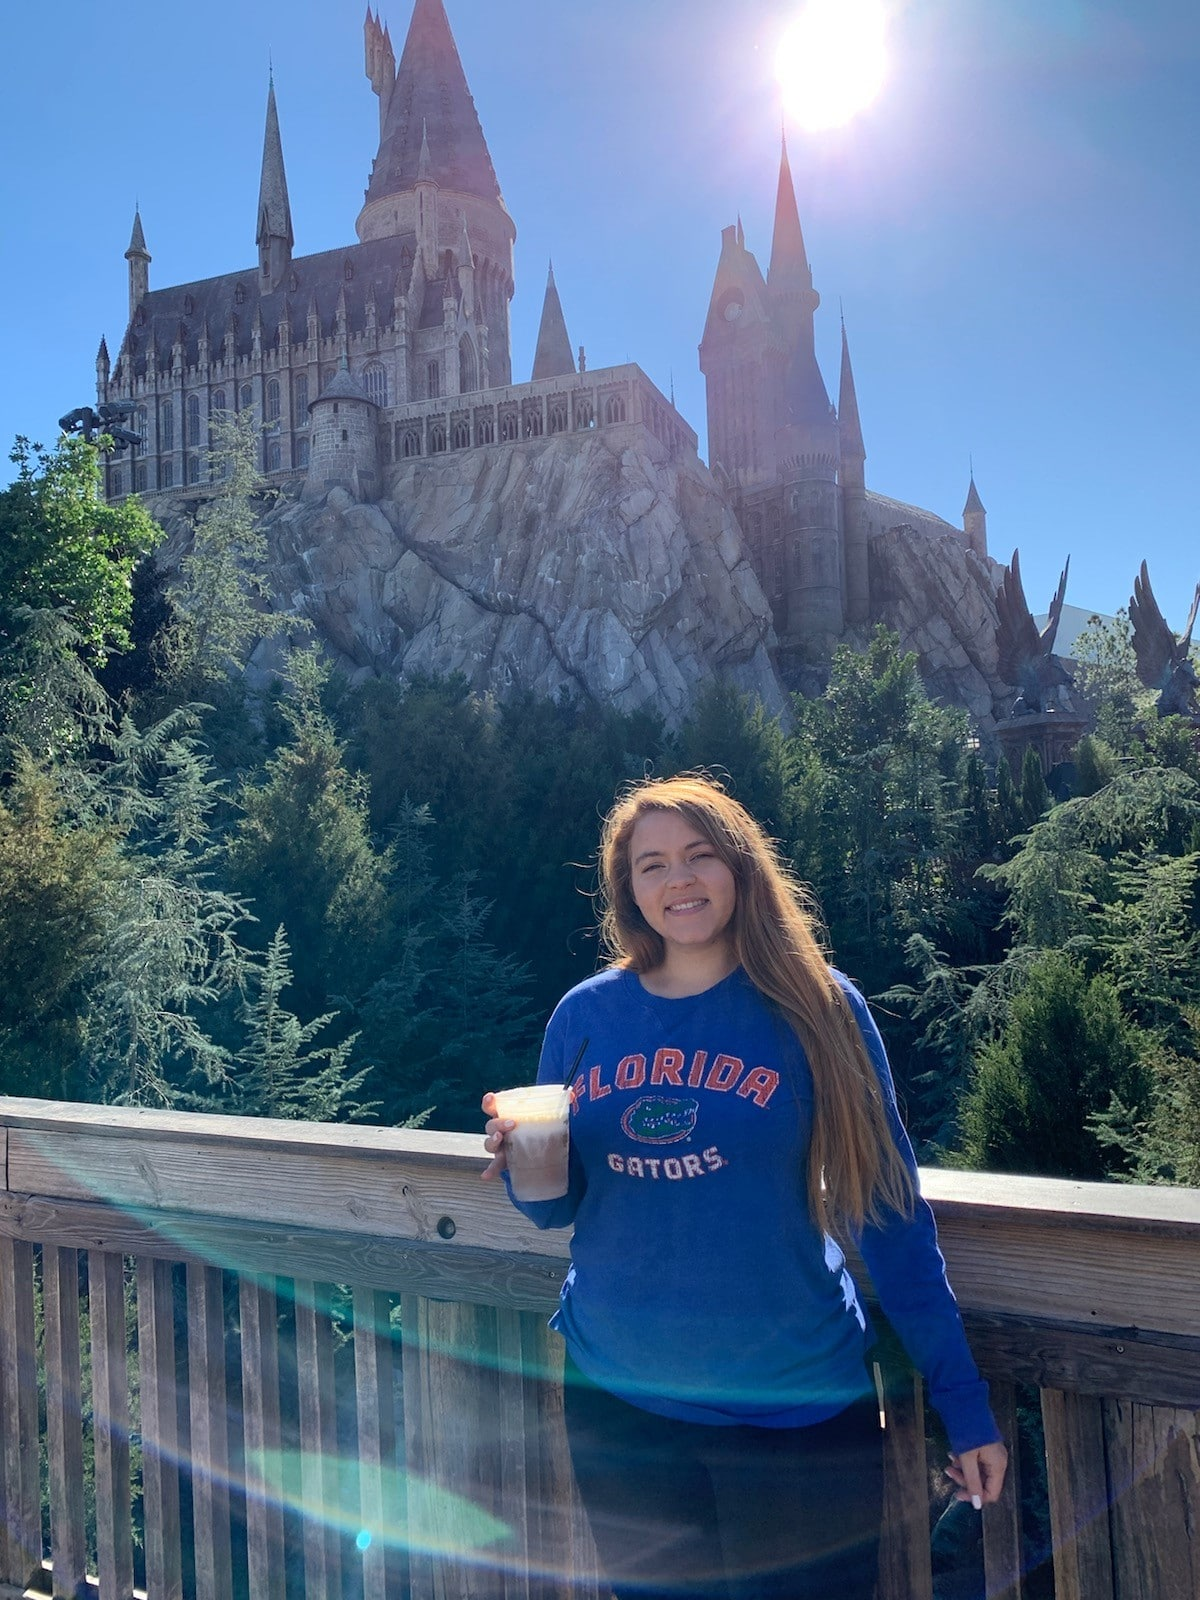 Monique Atkinson poses in front of the Hogwartz Castle at Harry Potter World at Universal Orlando. She wears a blue Florida Gators shirt and holds a butter beer.